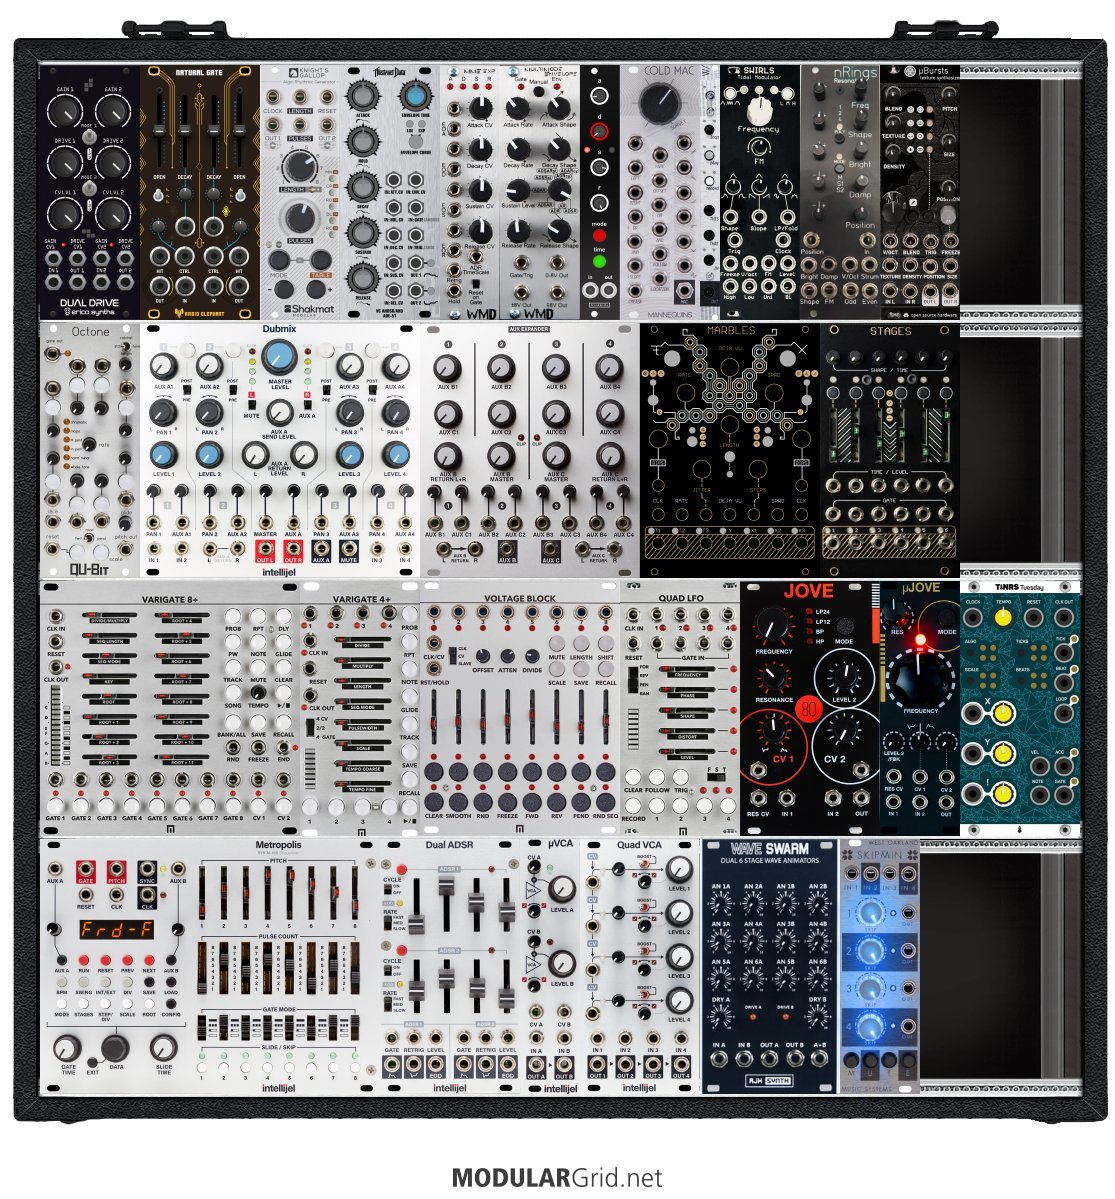 racks on modulargrid